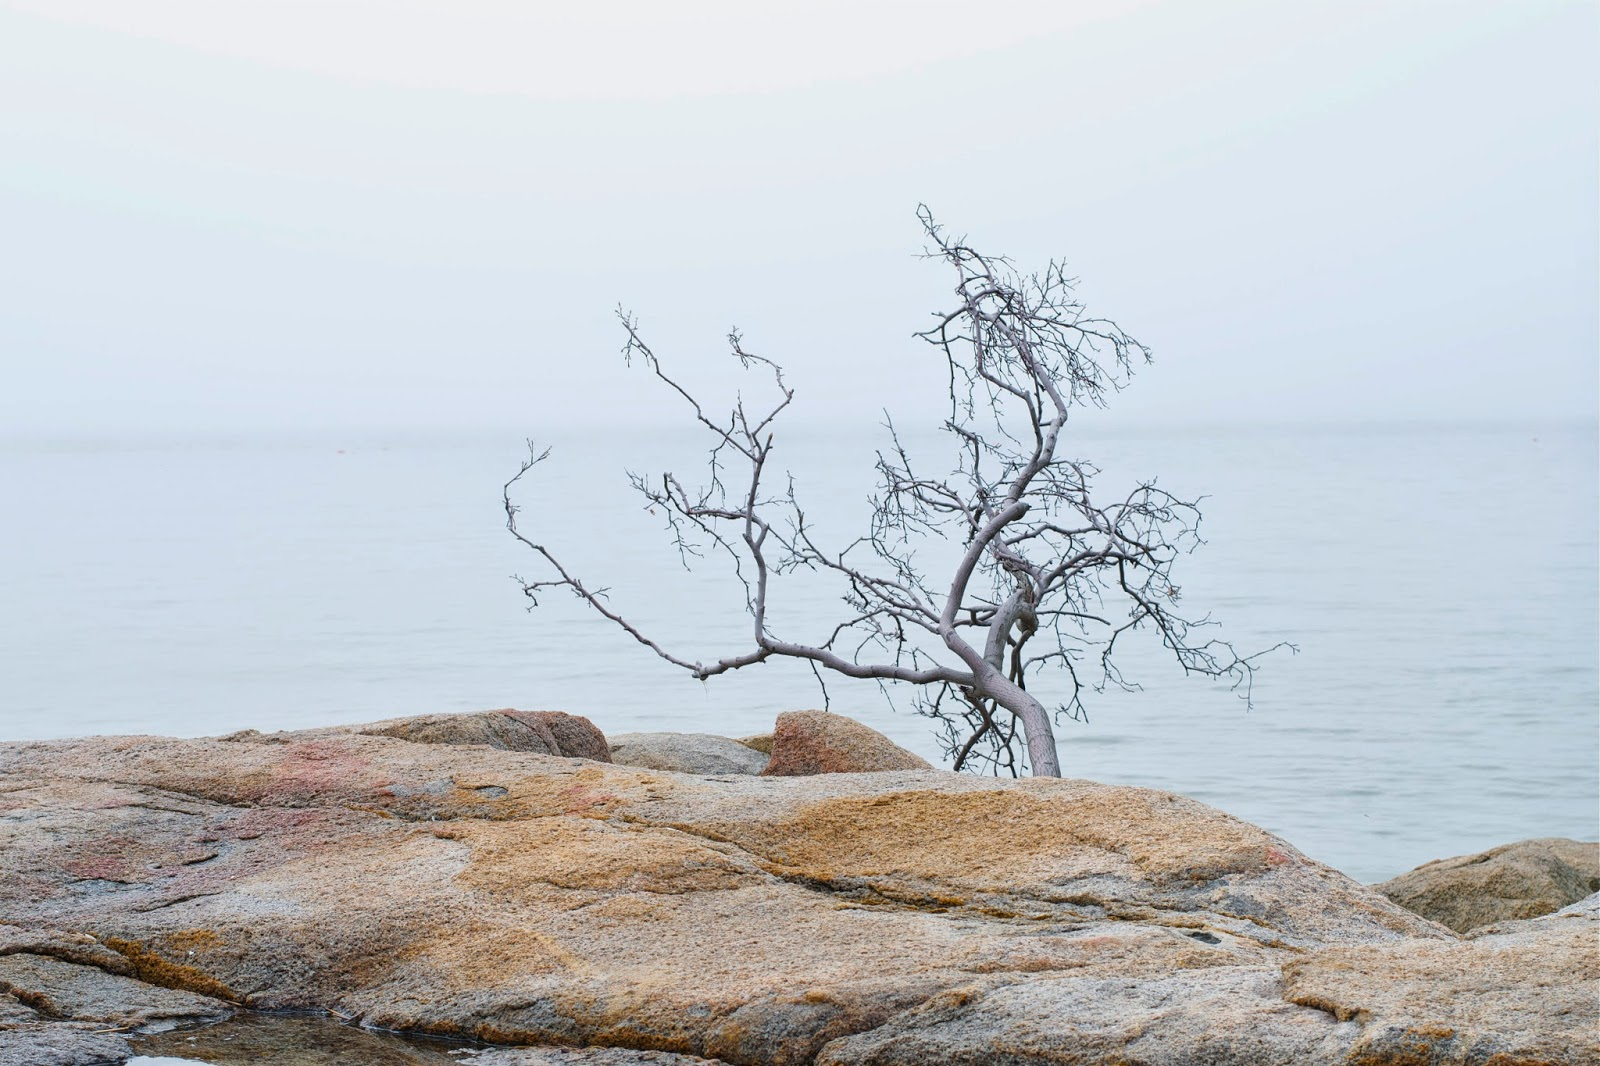 A branch that seems to have been torn and tossed onto the rocks at waters edge.